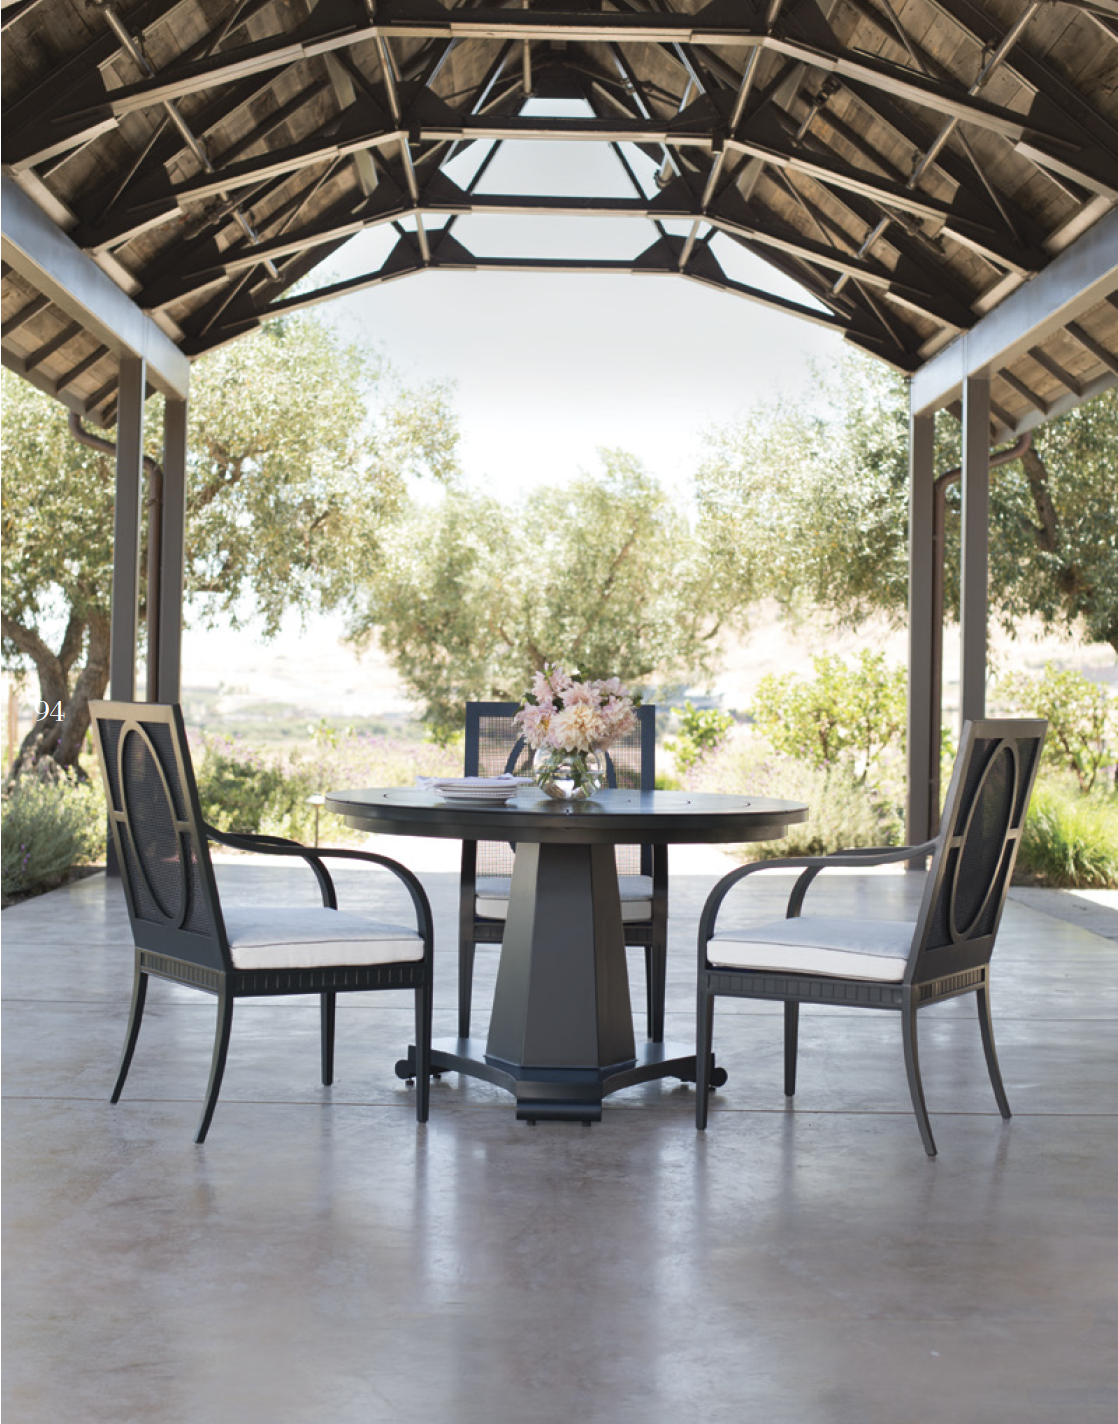 Stately and classic outdoor furniture | JANUS et Cie ... on Fine Living Patio Set id=73201